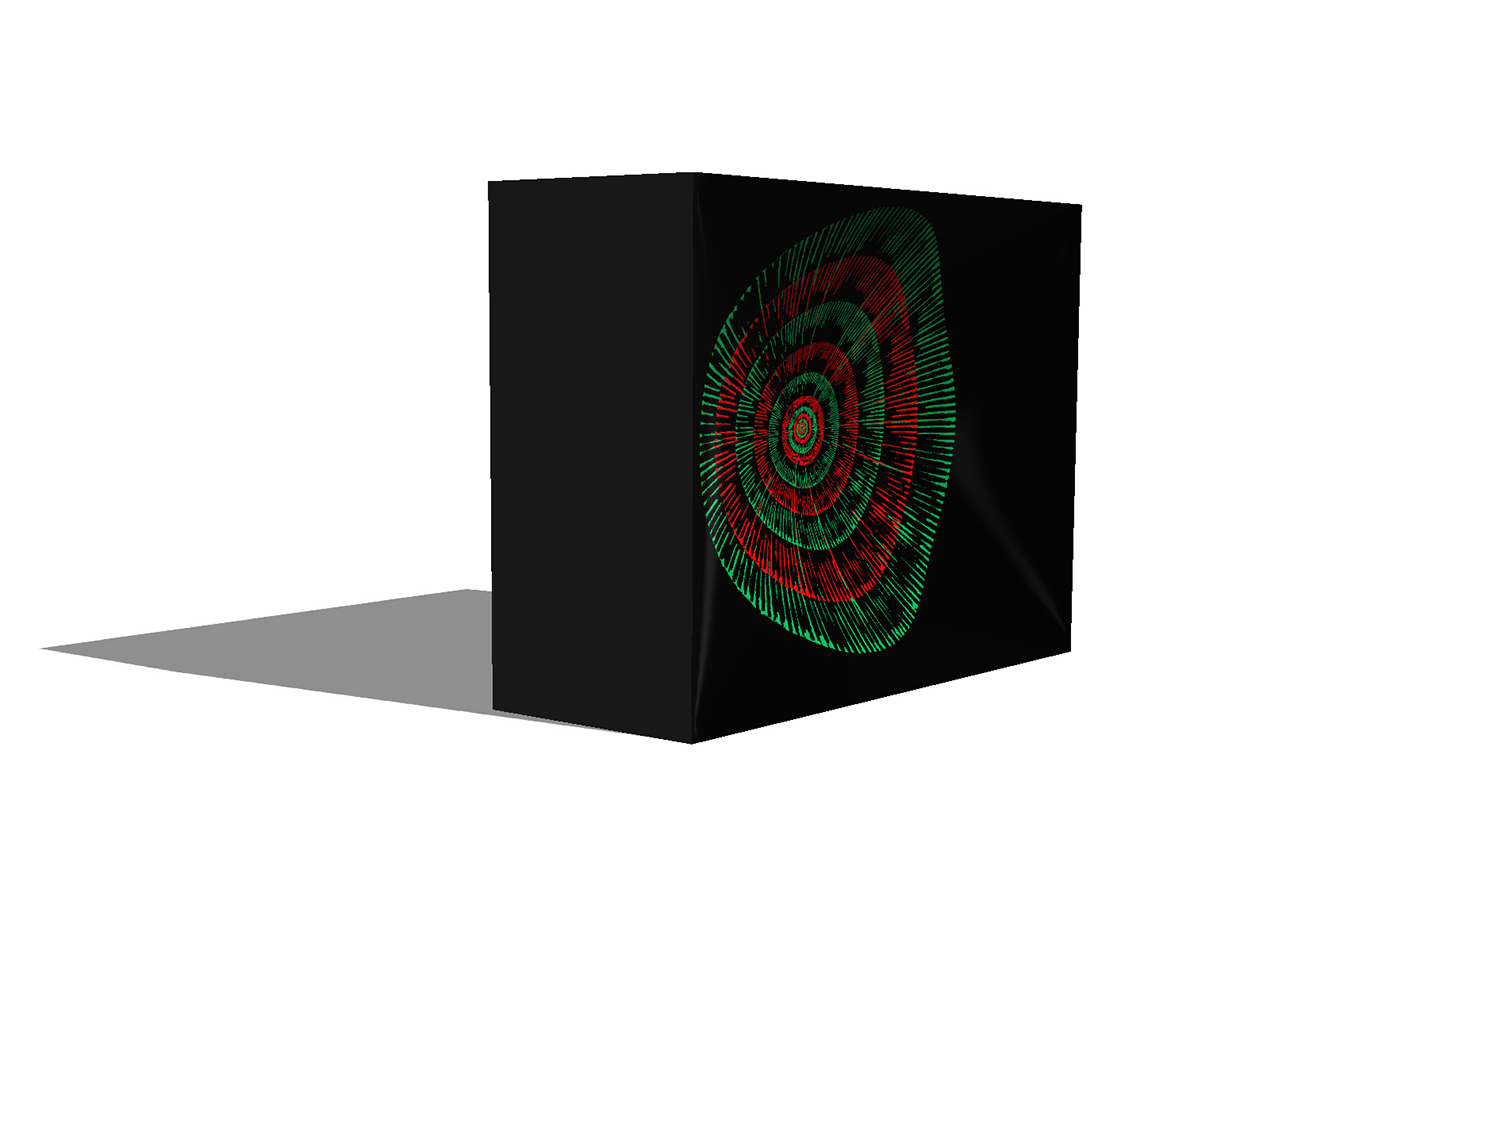 Simulation of a black block with a concave indent inlaid with concentric circles of colour, green and red